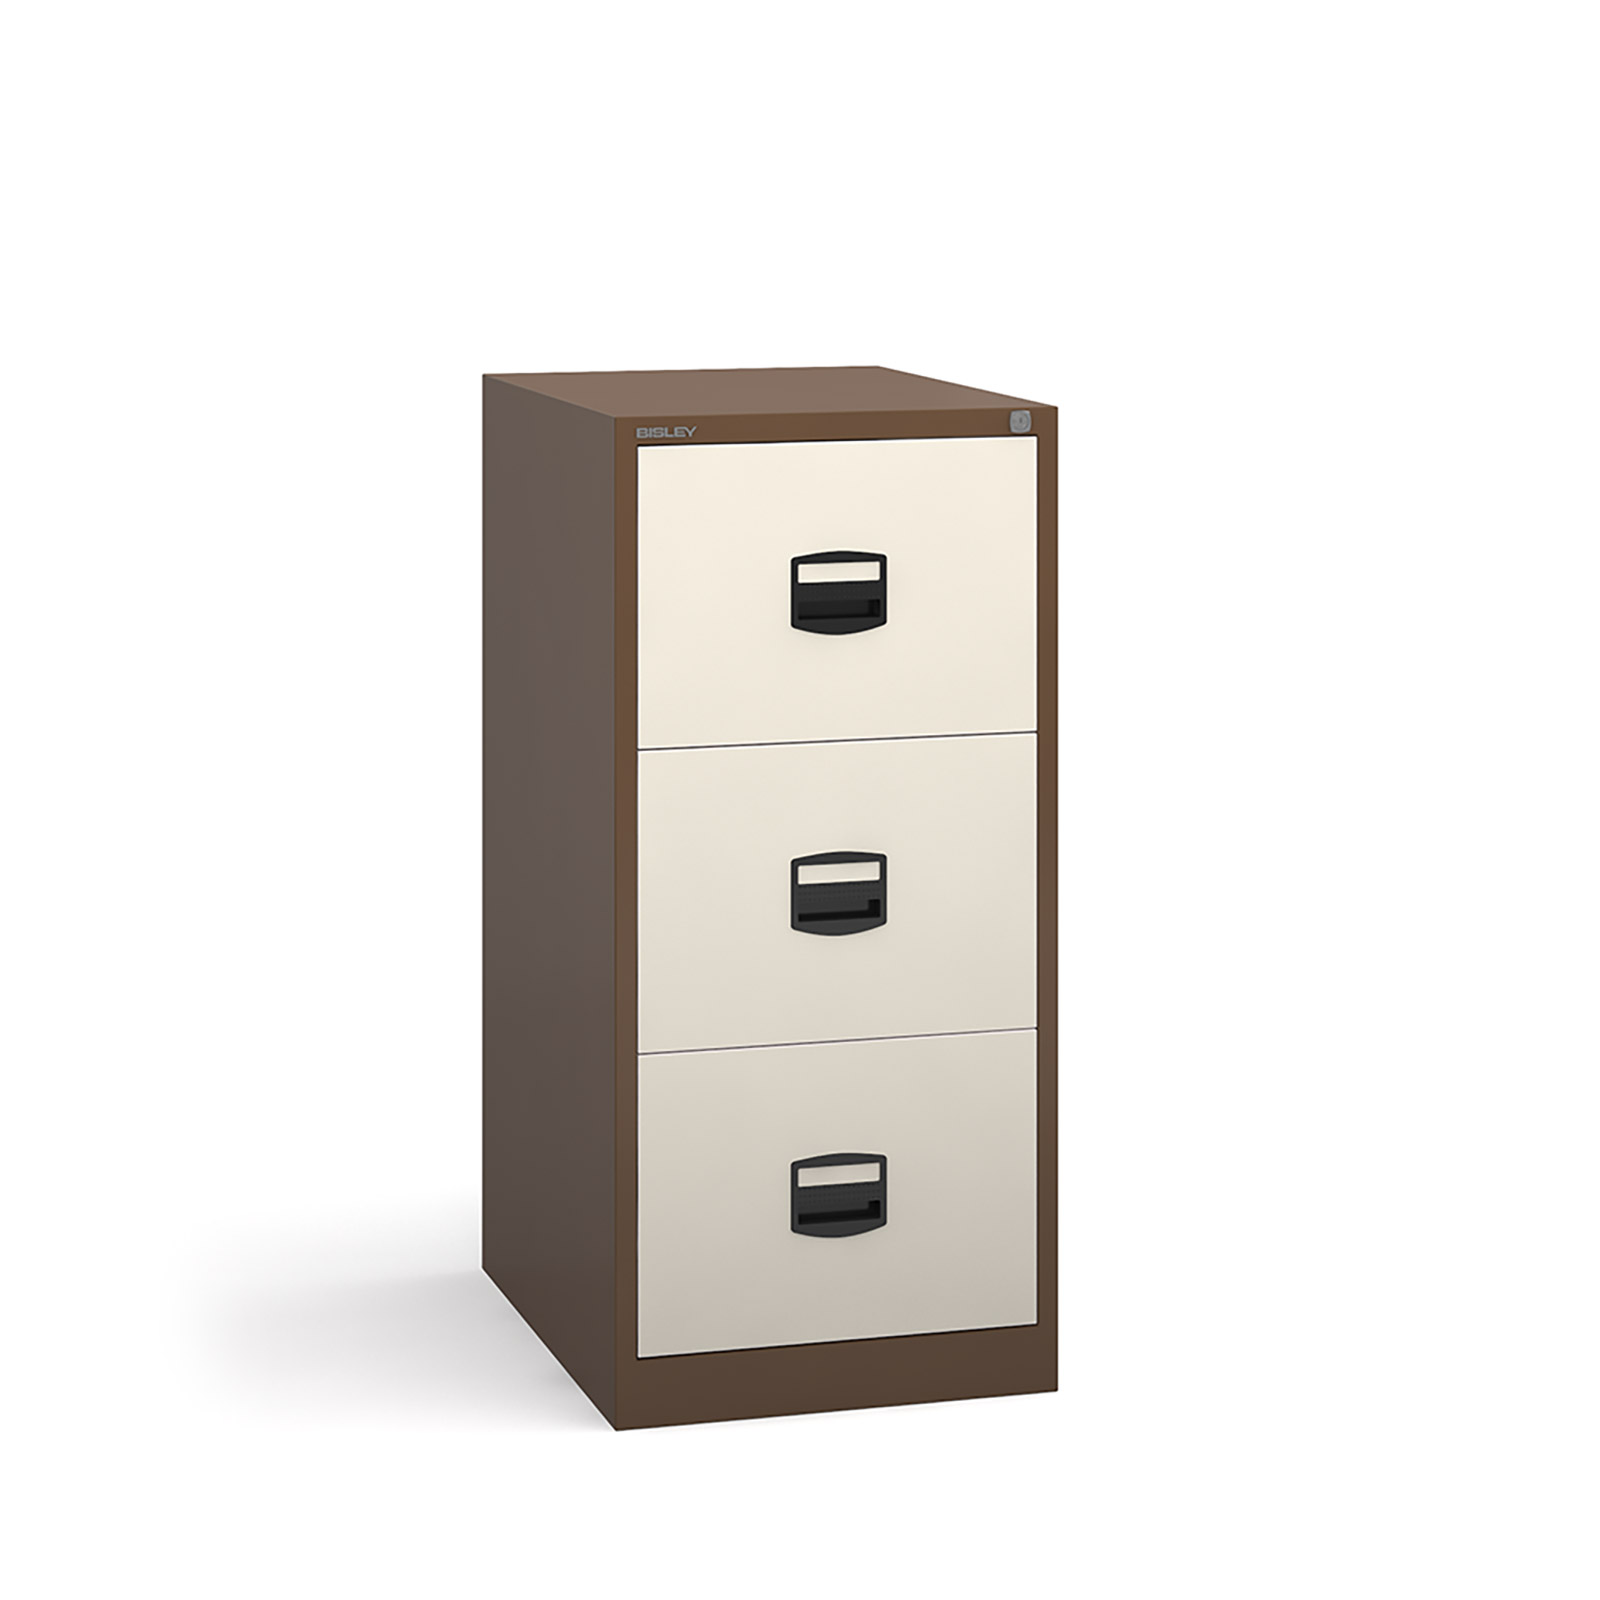 3 drawer contract filing cabinet in Coffee Cream